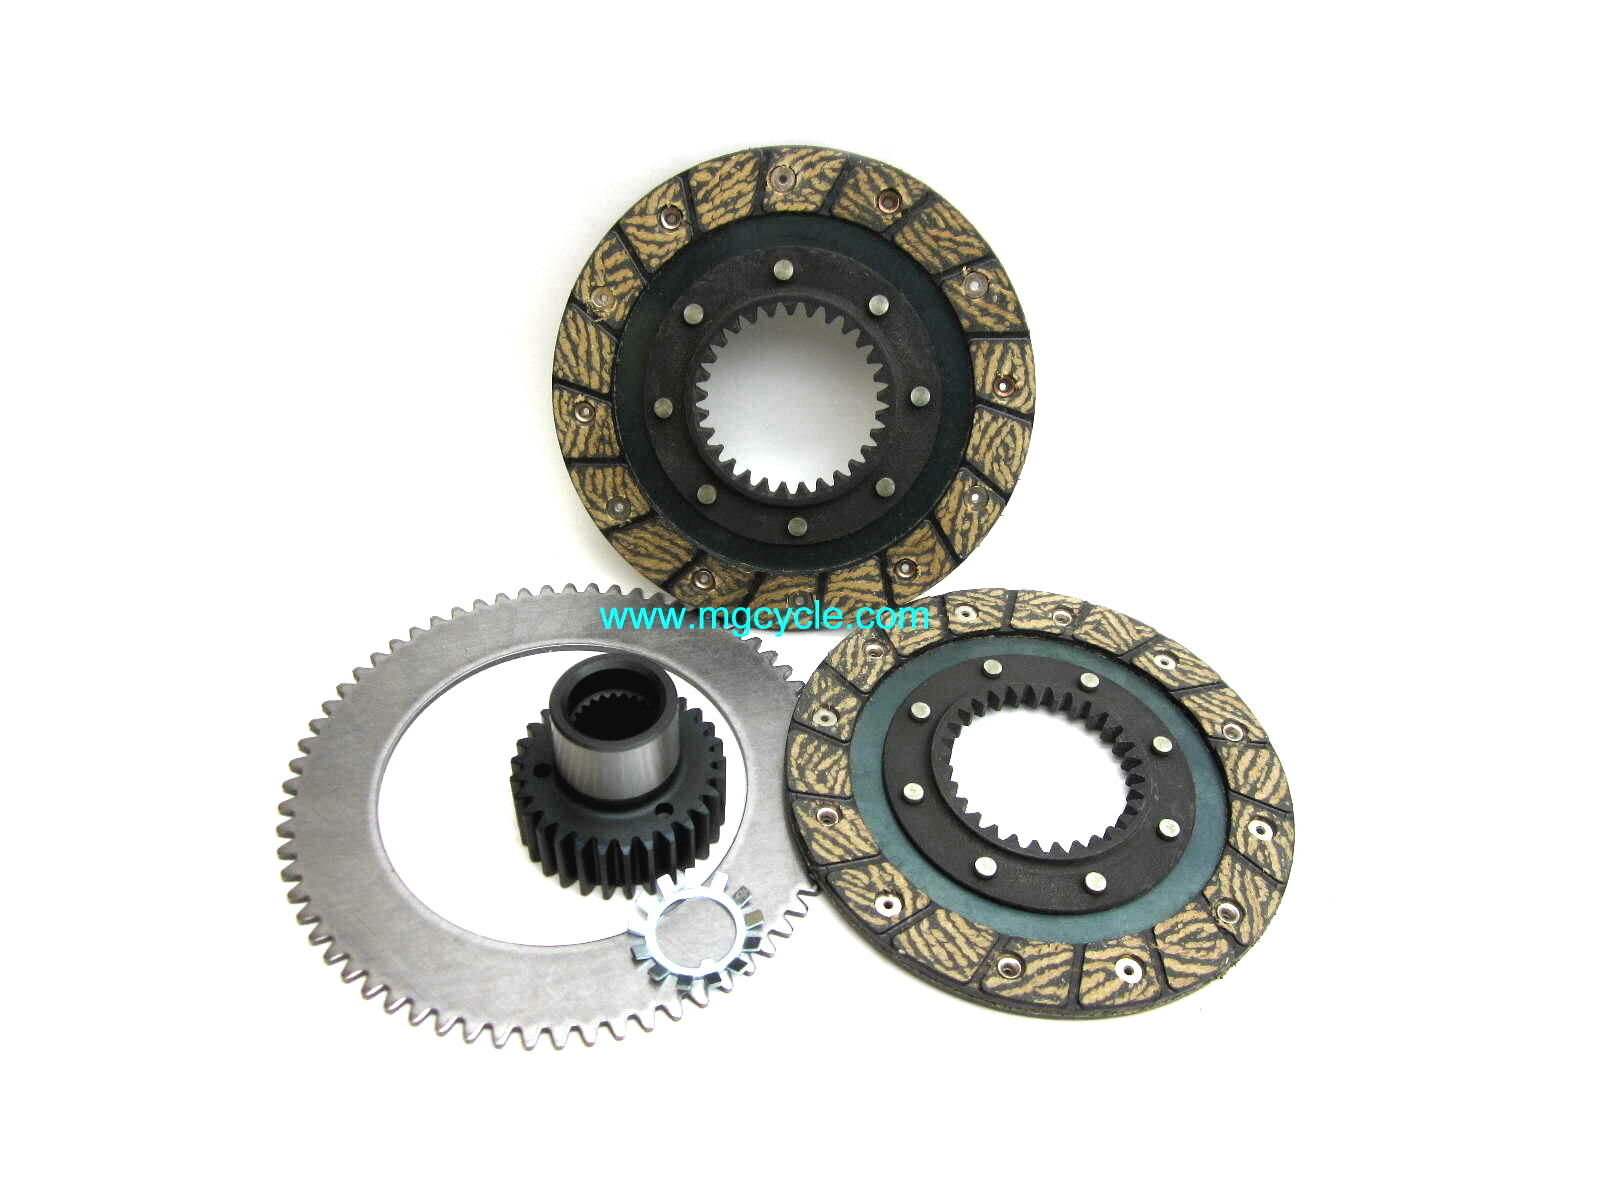 SD-TEC clutch kit, 2 plates, hub, interrmediate plate 5 speeds